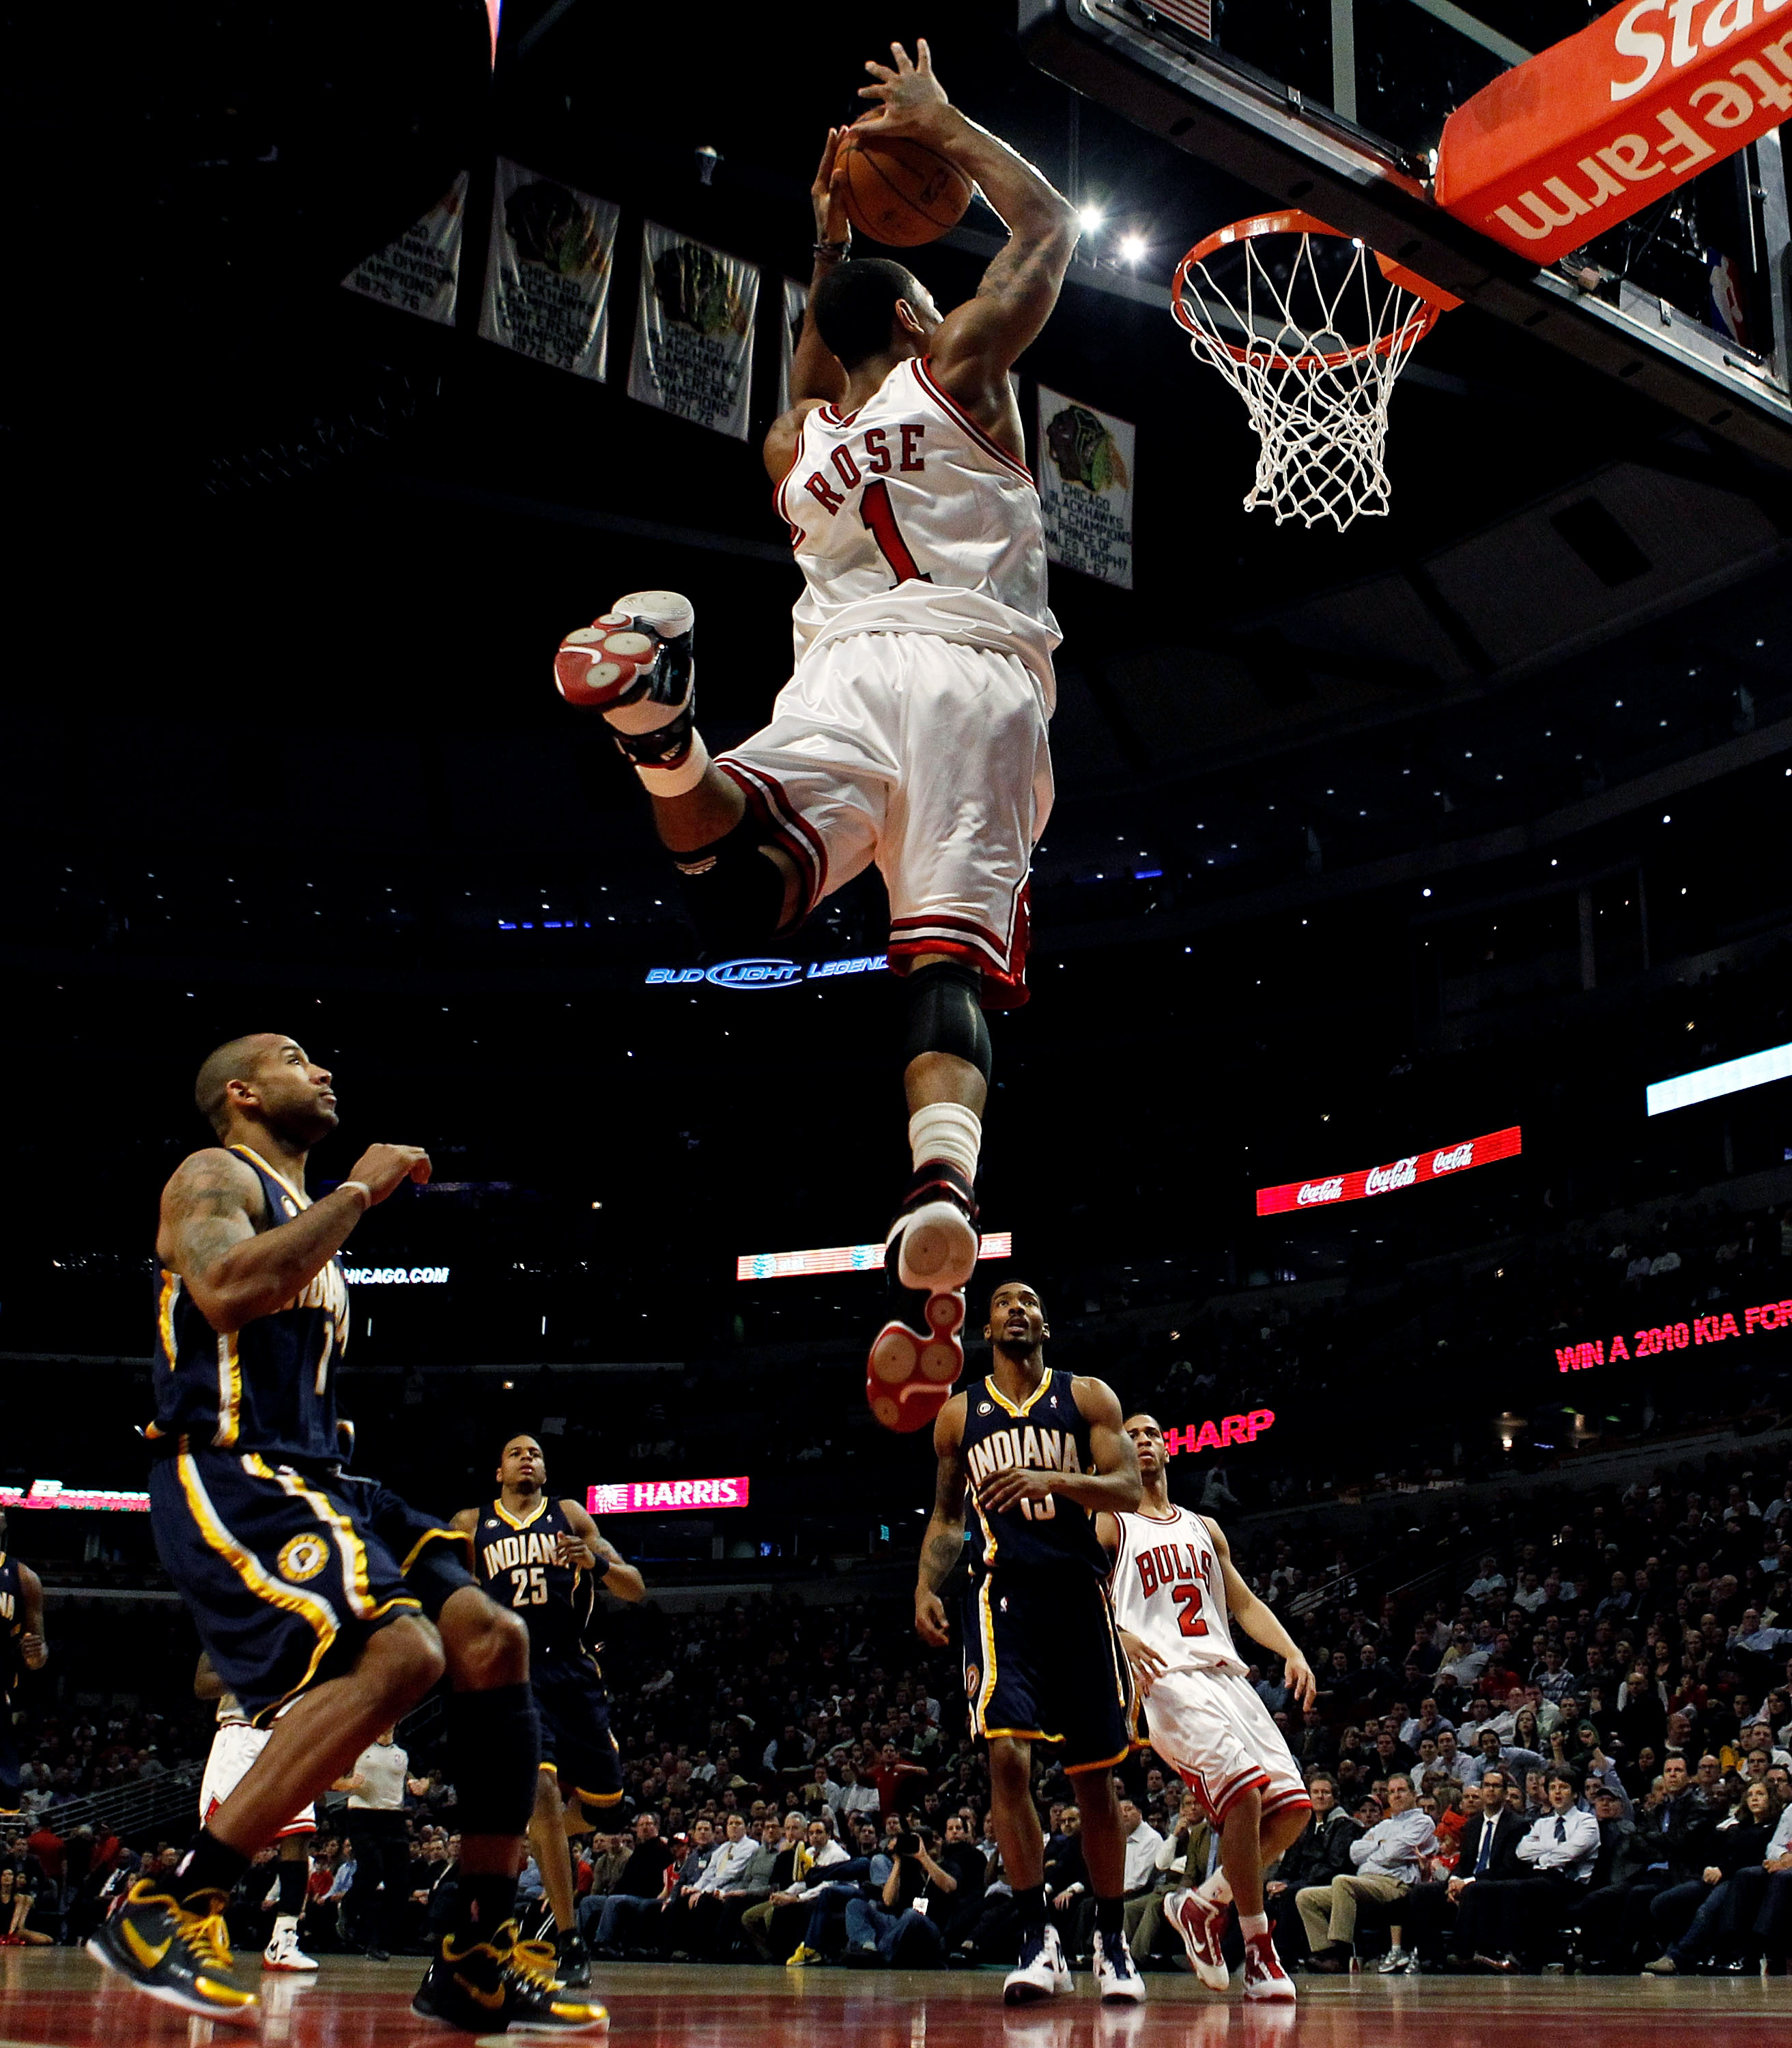 Derrick Rose pummeling the rim against the Indiana Pacers.